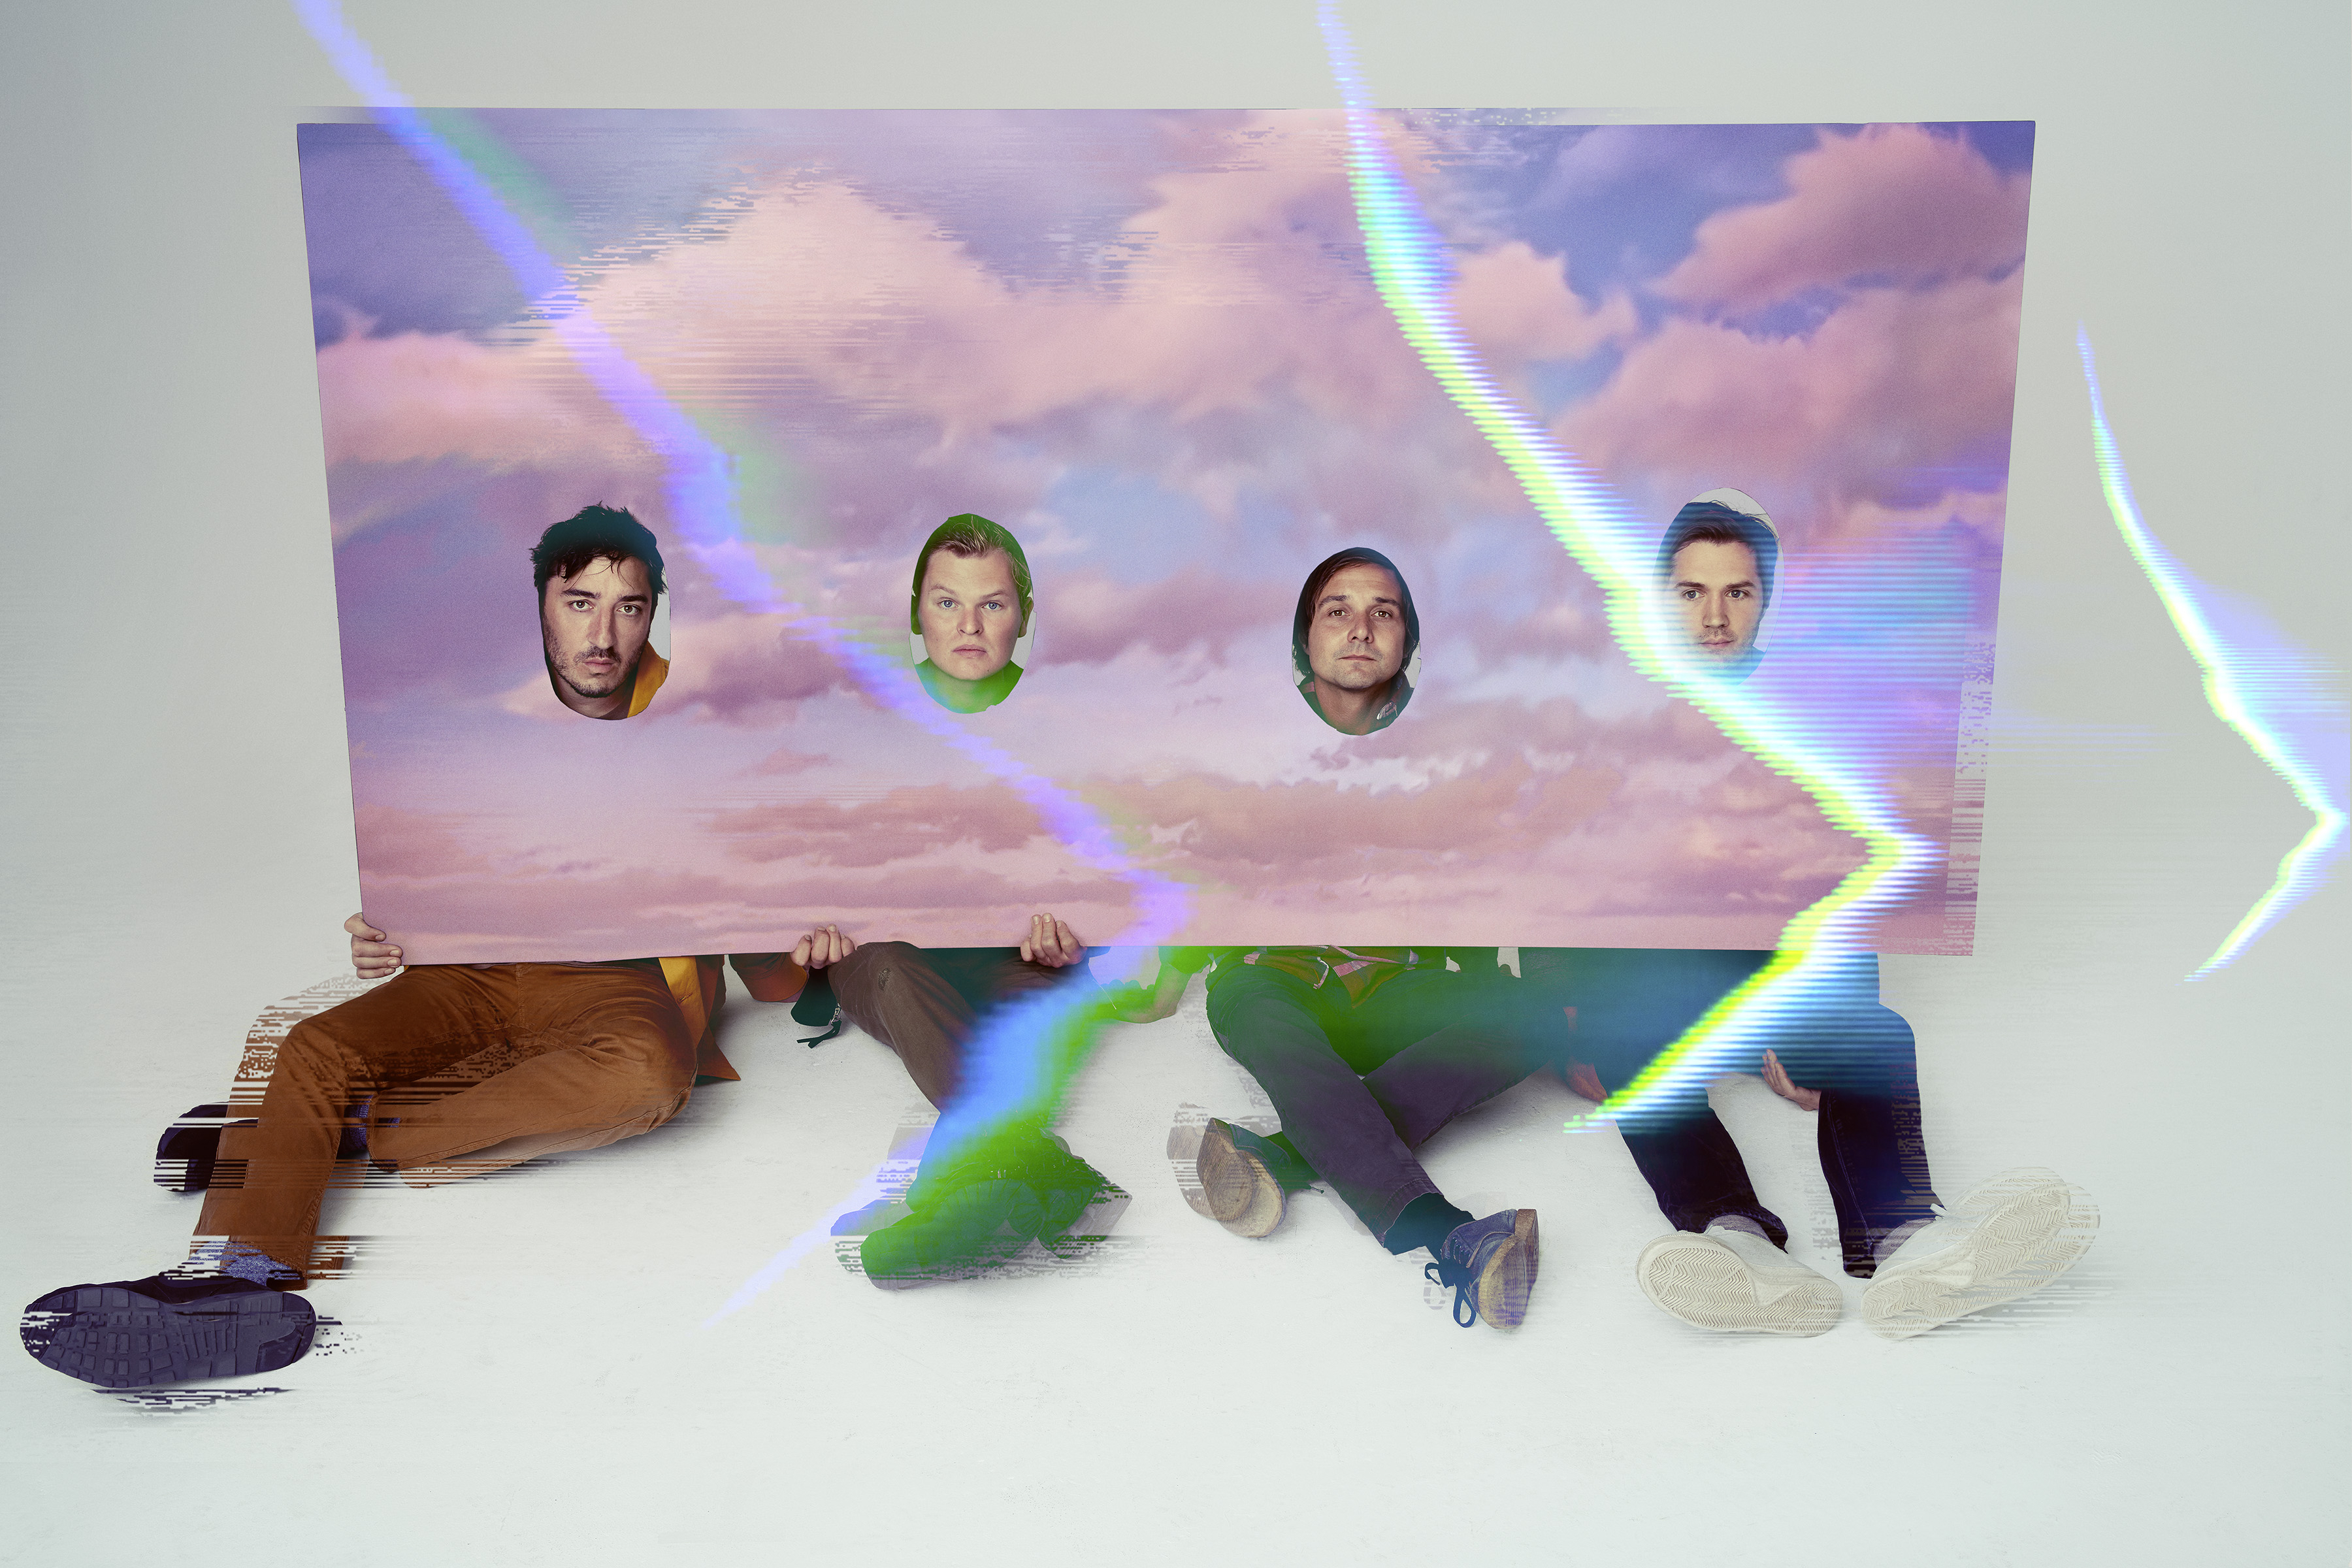 Our interview with Grizzly Bear: Grizzly Bear's Daniel Rossen talk